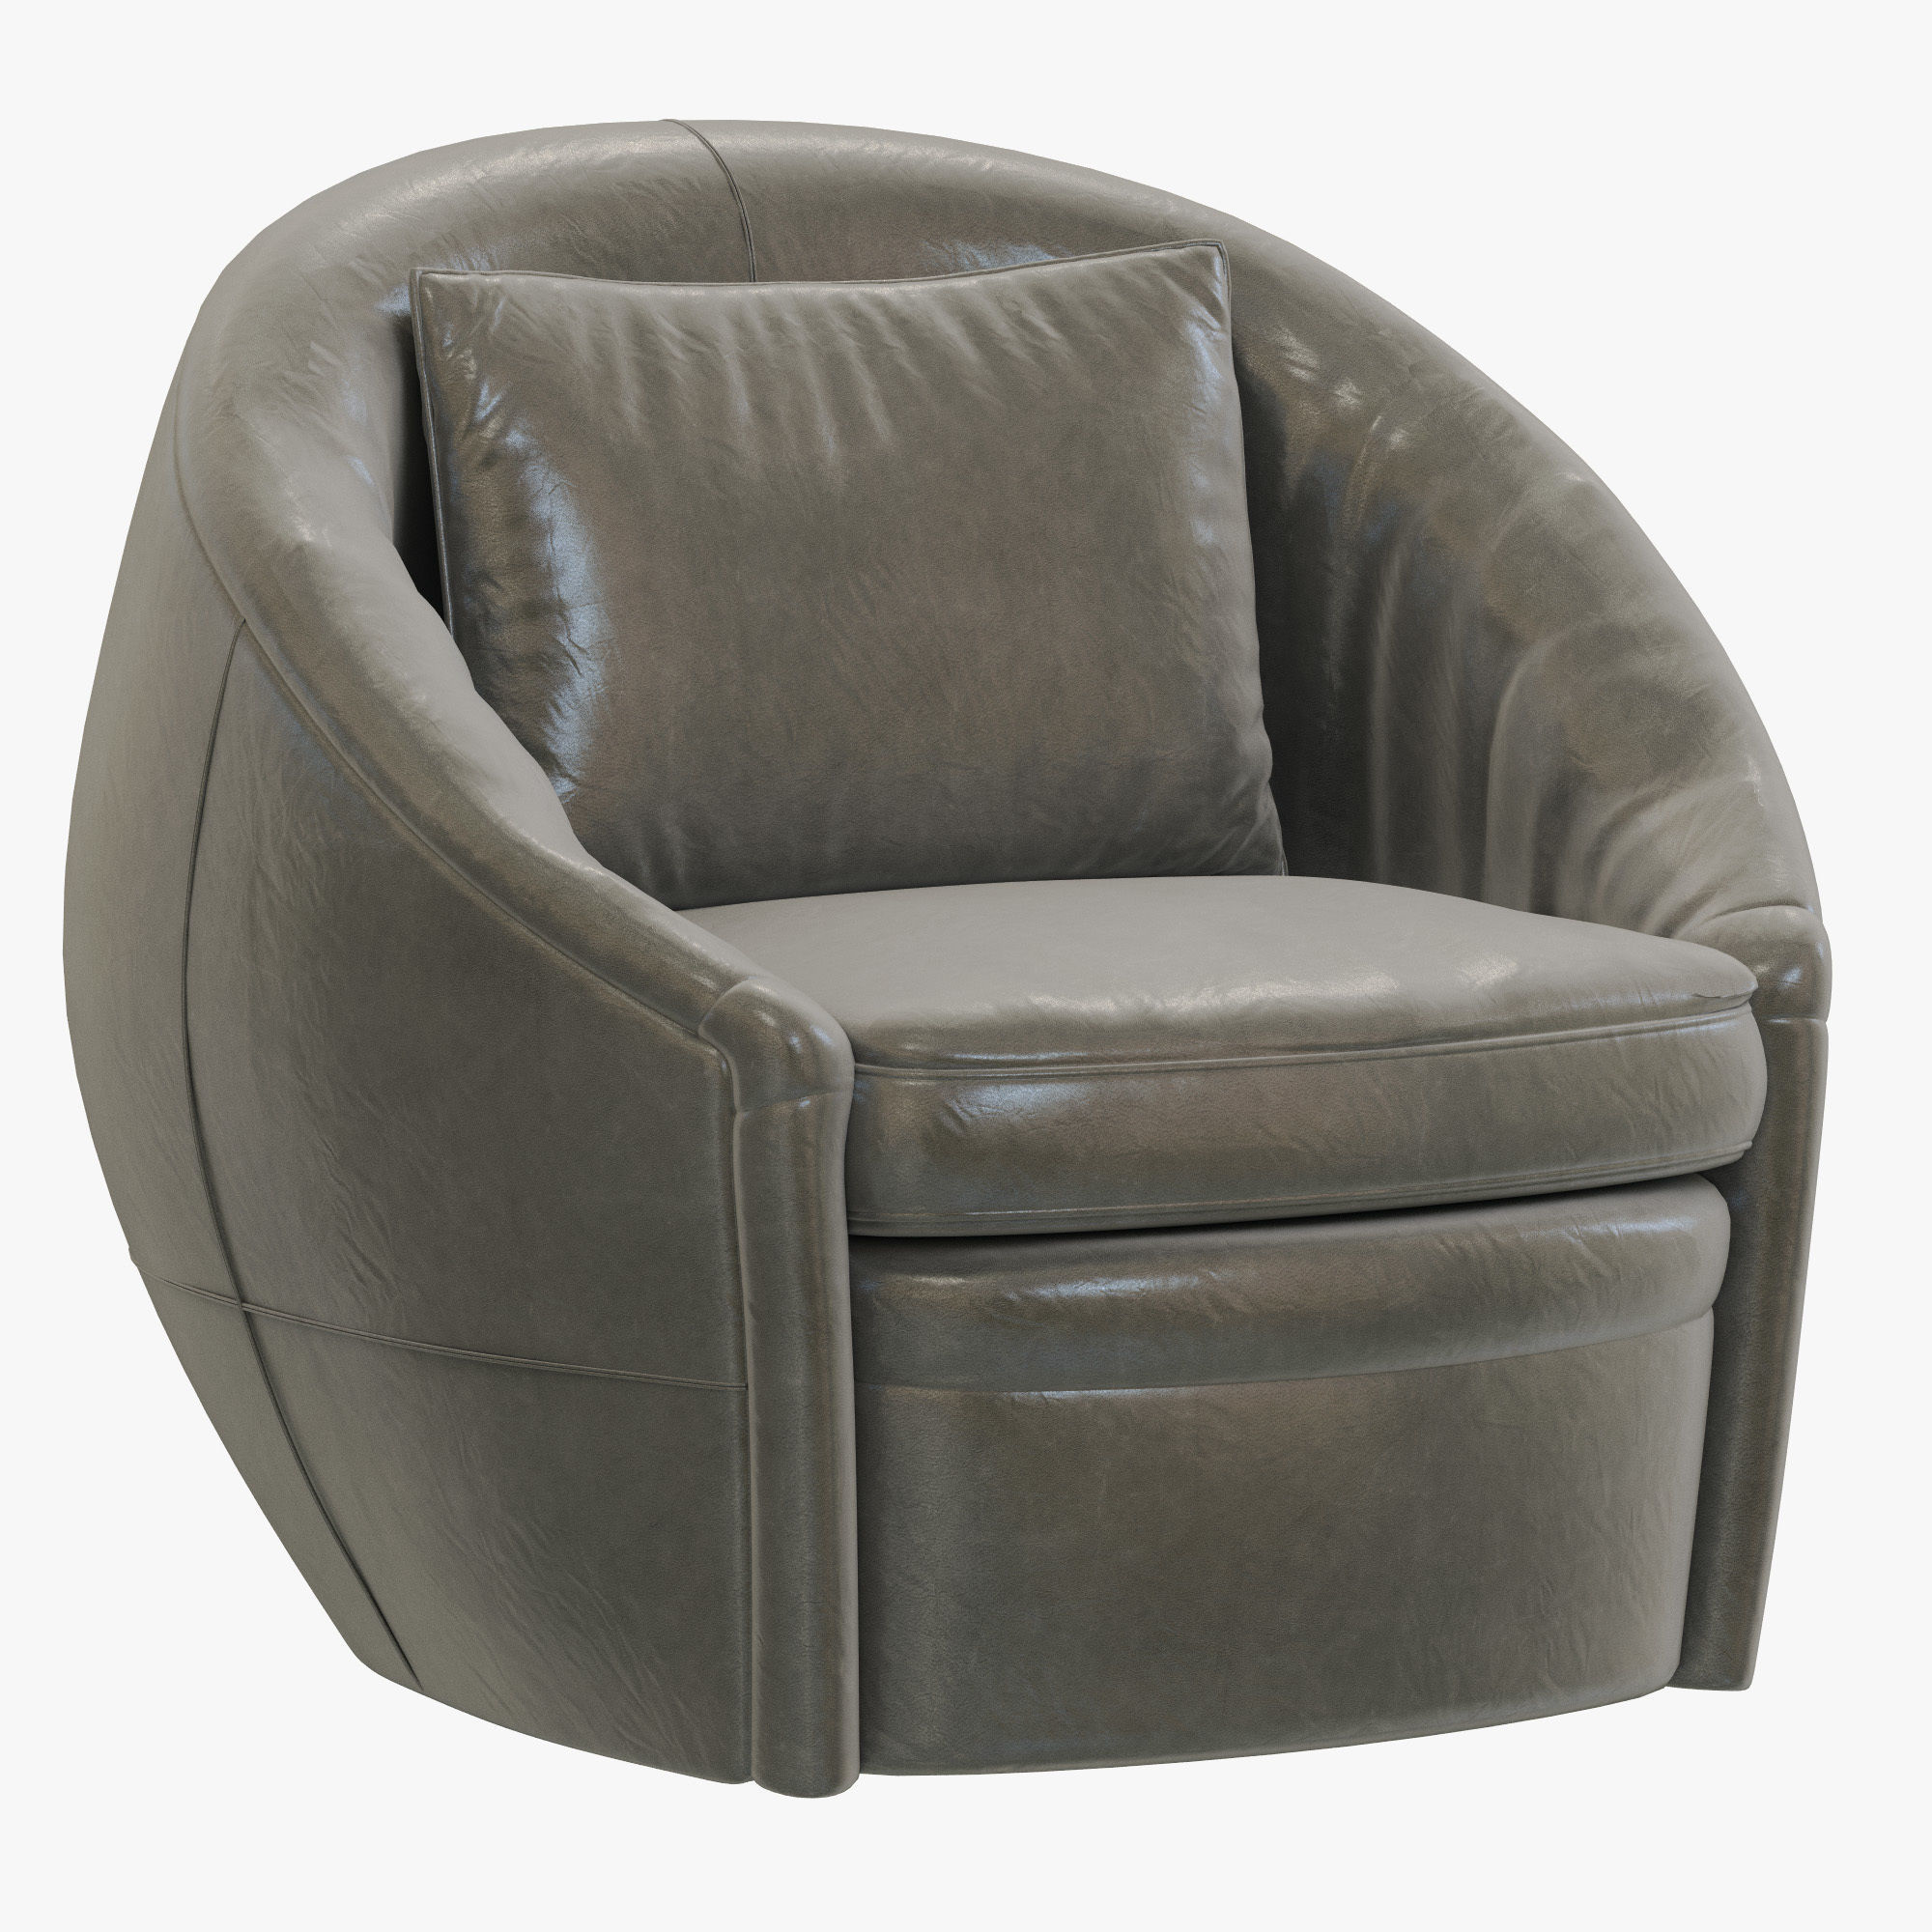 Restoration Hardware Leather Chairs Restoration Hardware Oberon Leather Swivel Chair 3d Model